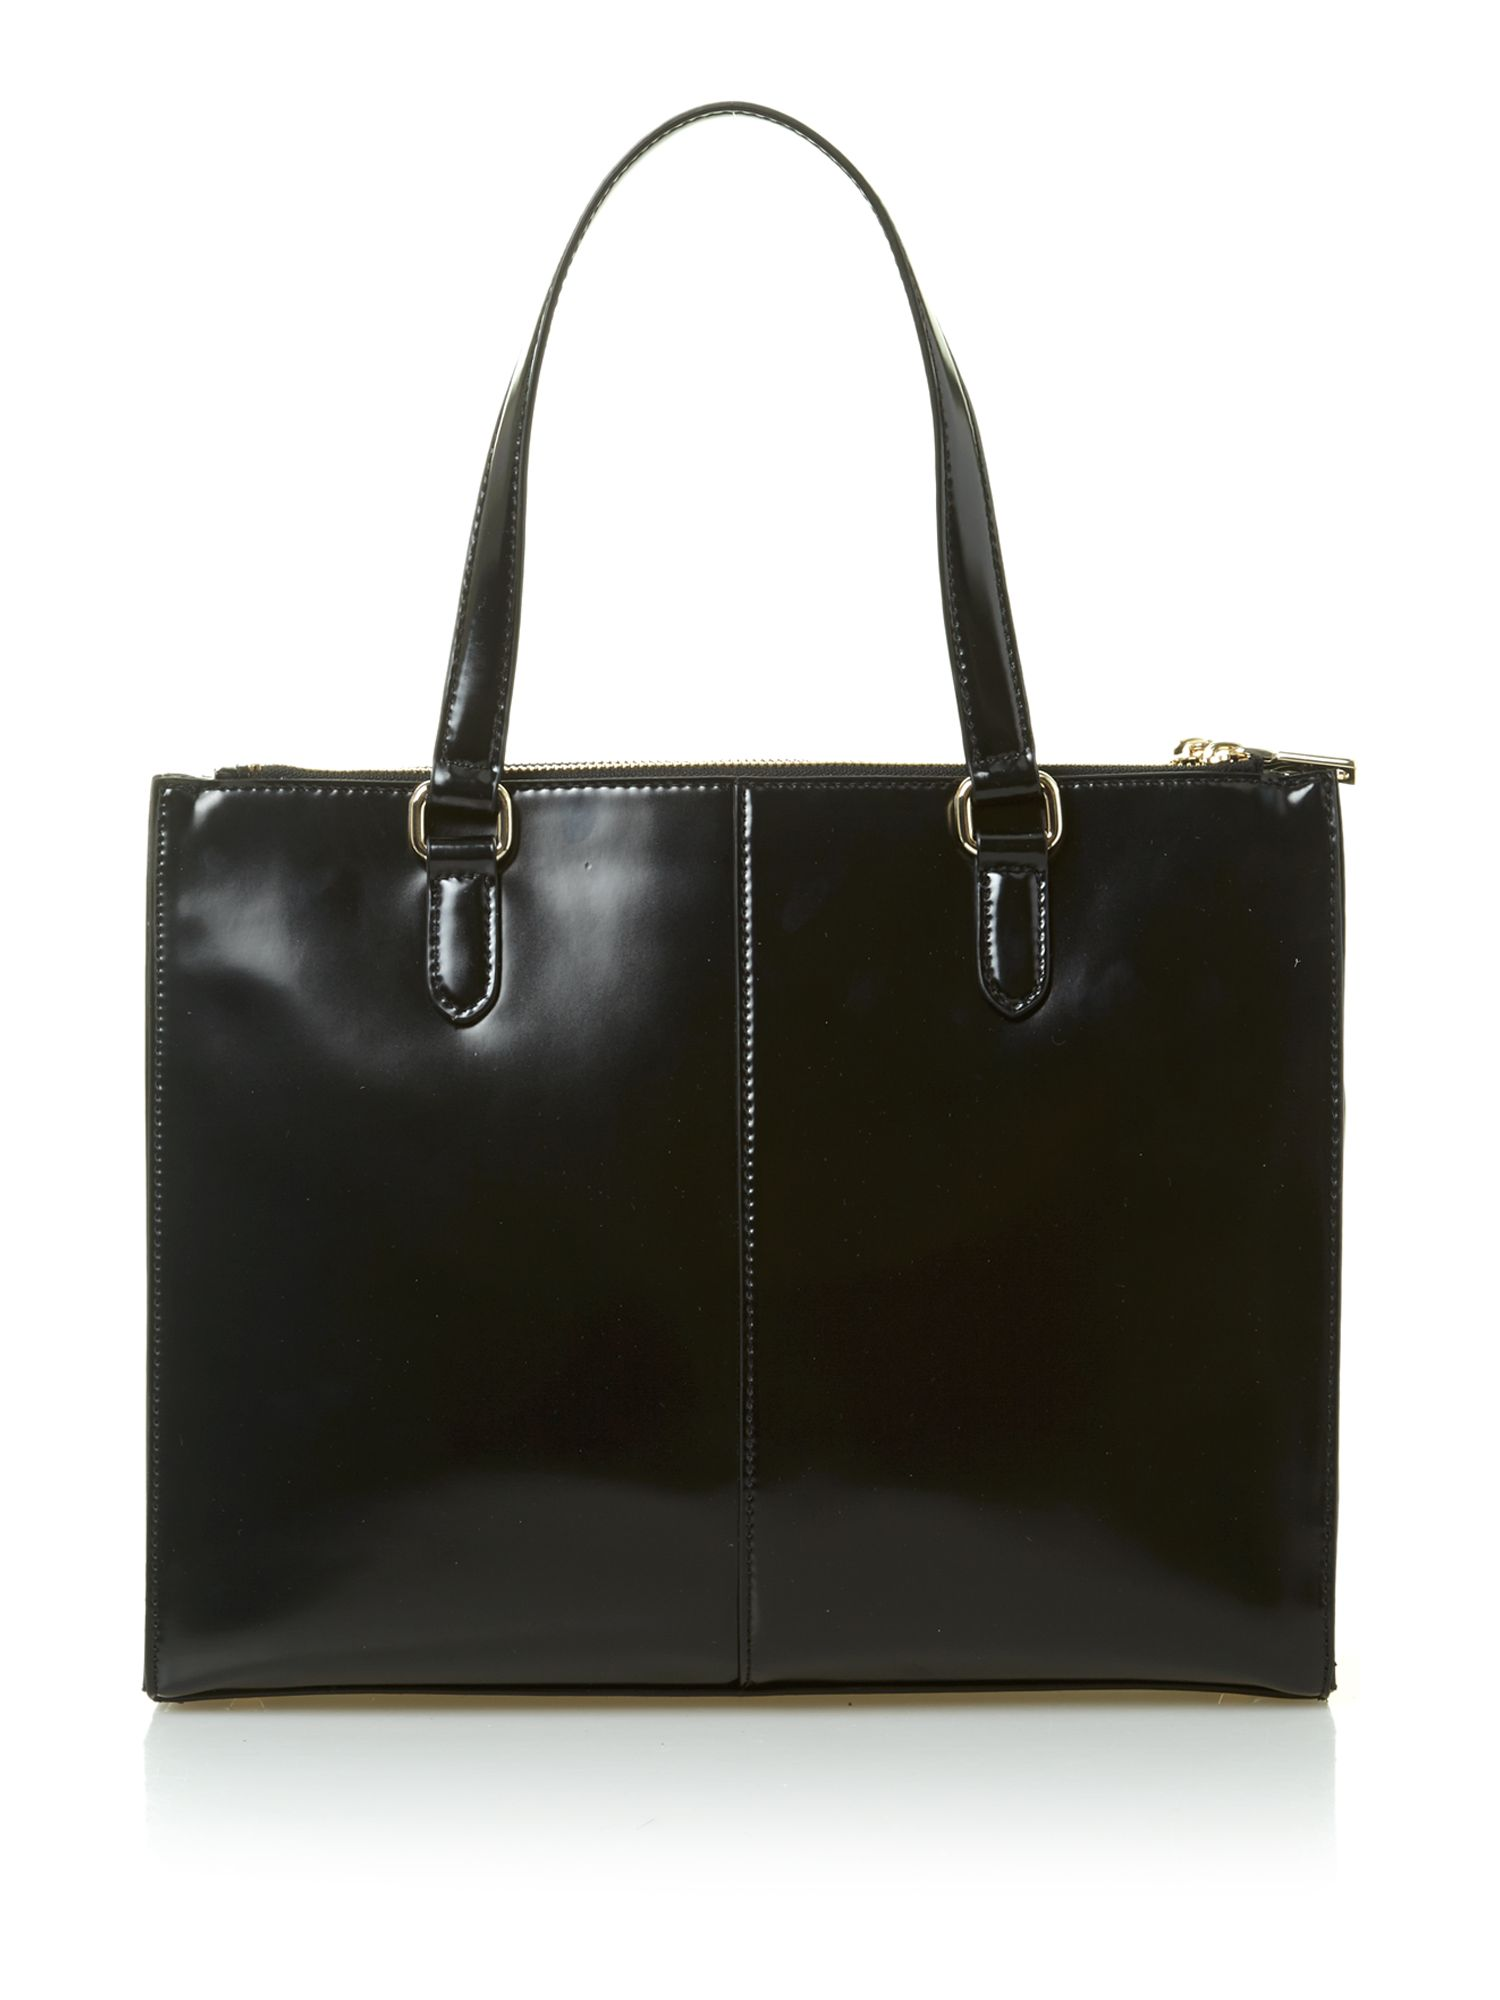 Hudson leather black tote bag